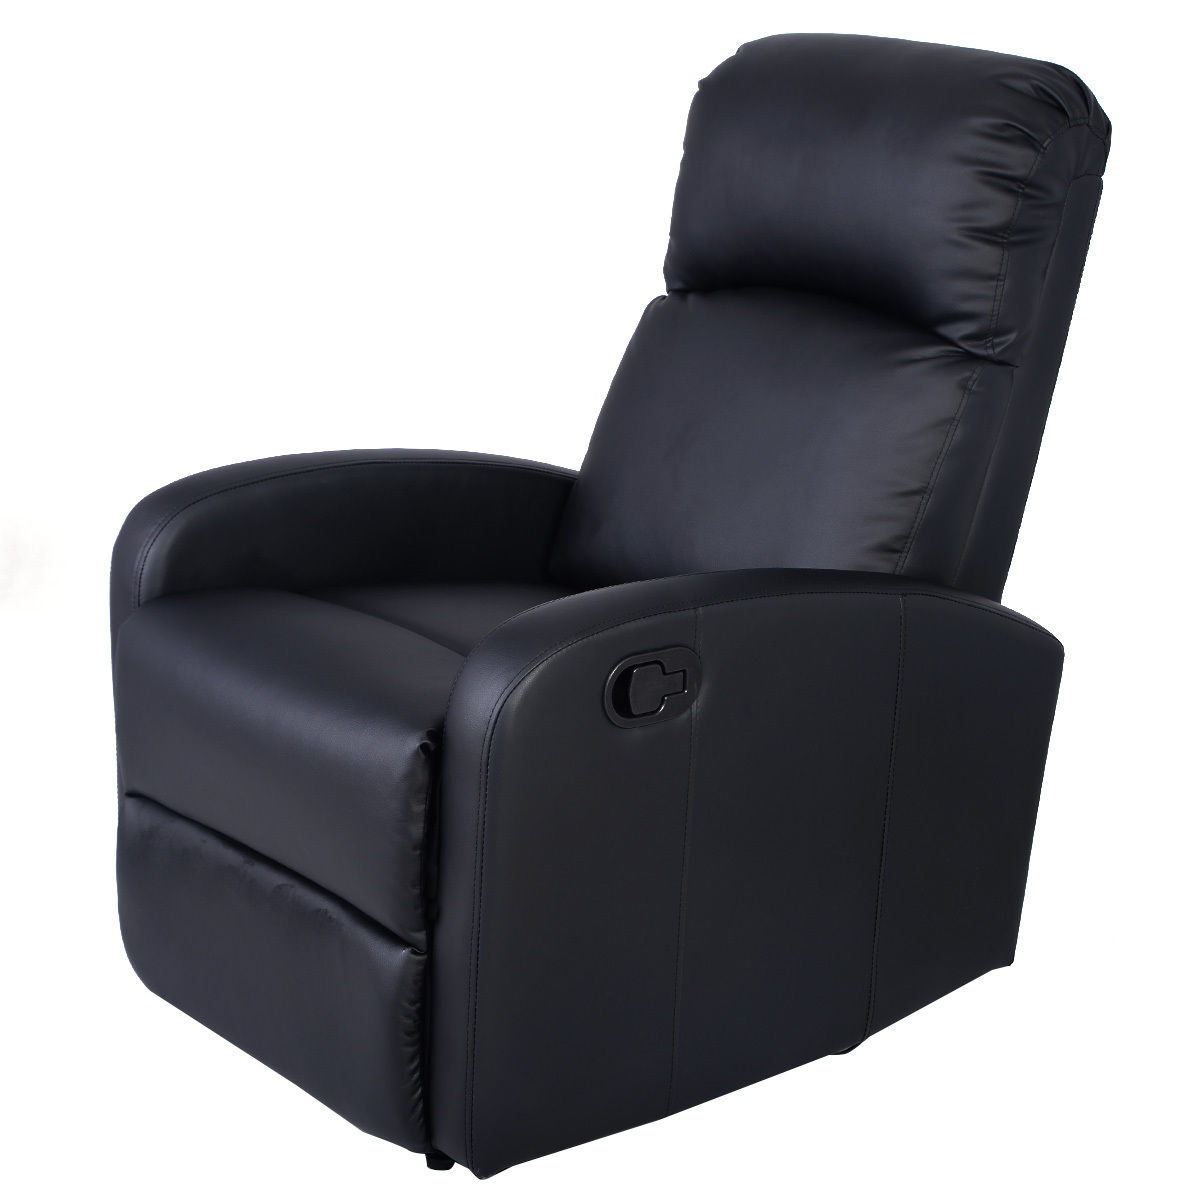 Rogan Leather Cafe Latte Swivel Glider Recliners Regarding Well Known Furniture: Surprising Simmons Recliners For Contemporary Living Room (View 14 of 20)